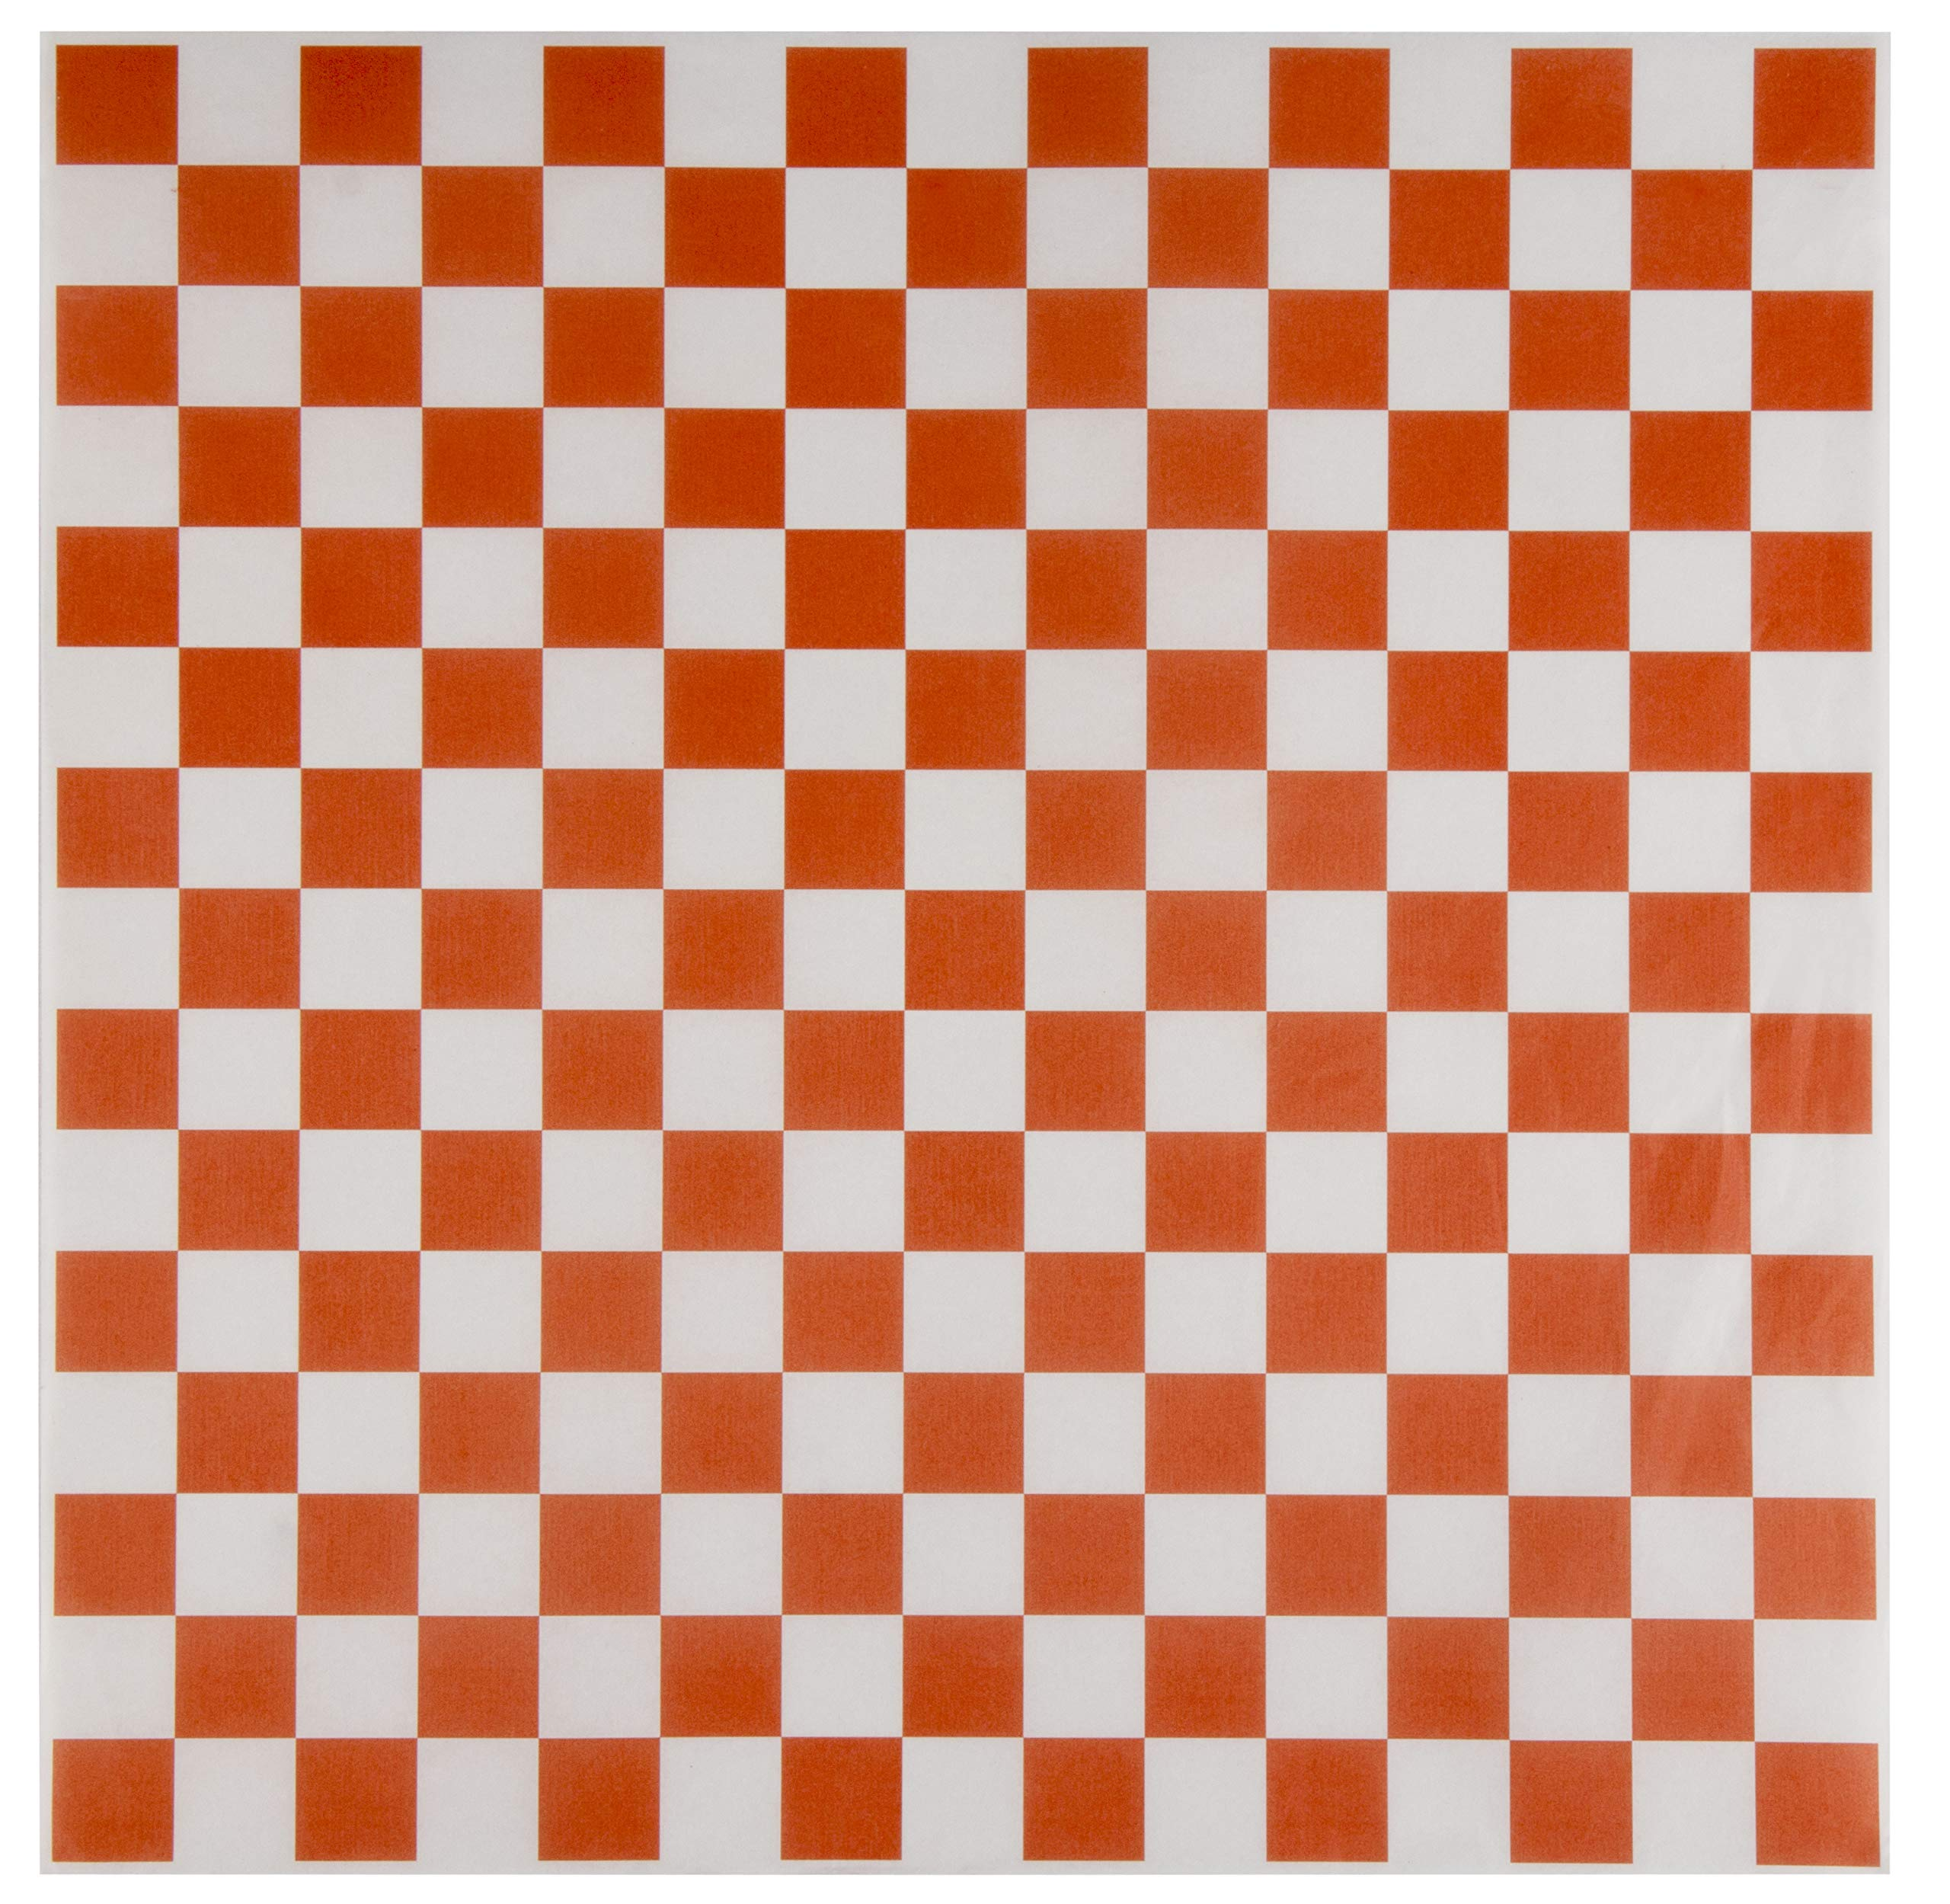 Deli Paper Basket Liner - 500-Pack 12-Inch Orange and White Checkered Sandwich Wrap Sheets, Grease-Proof Food Wrapping Square Liners, For Fast Food Service, Picnics, Barbecue Party Supplies